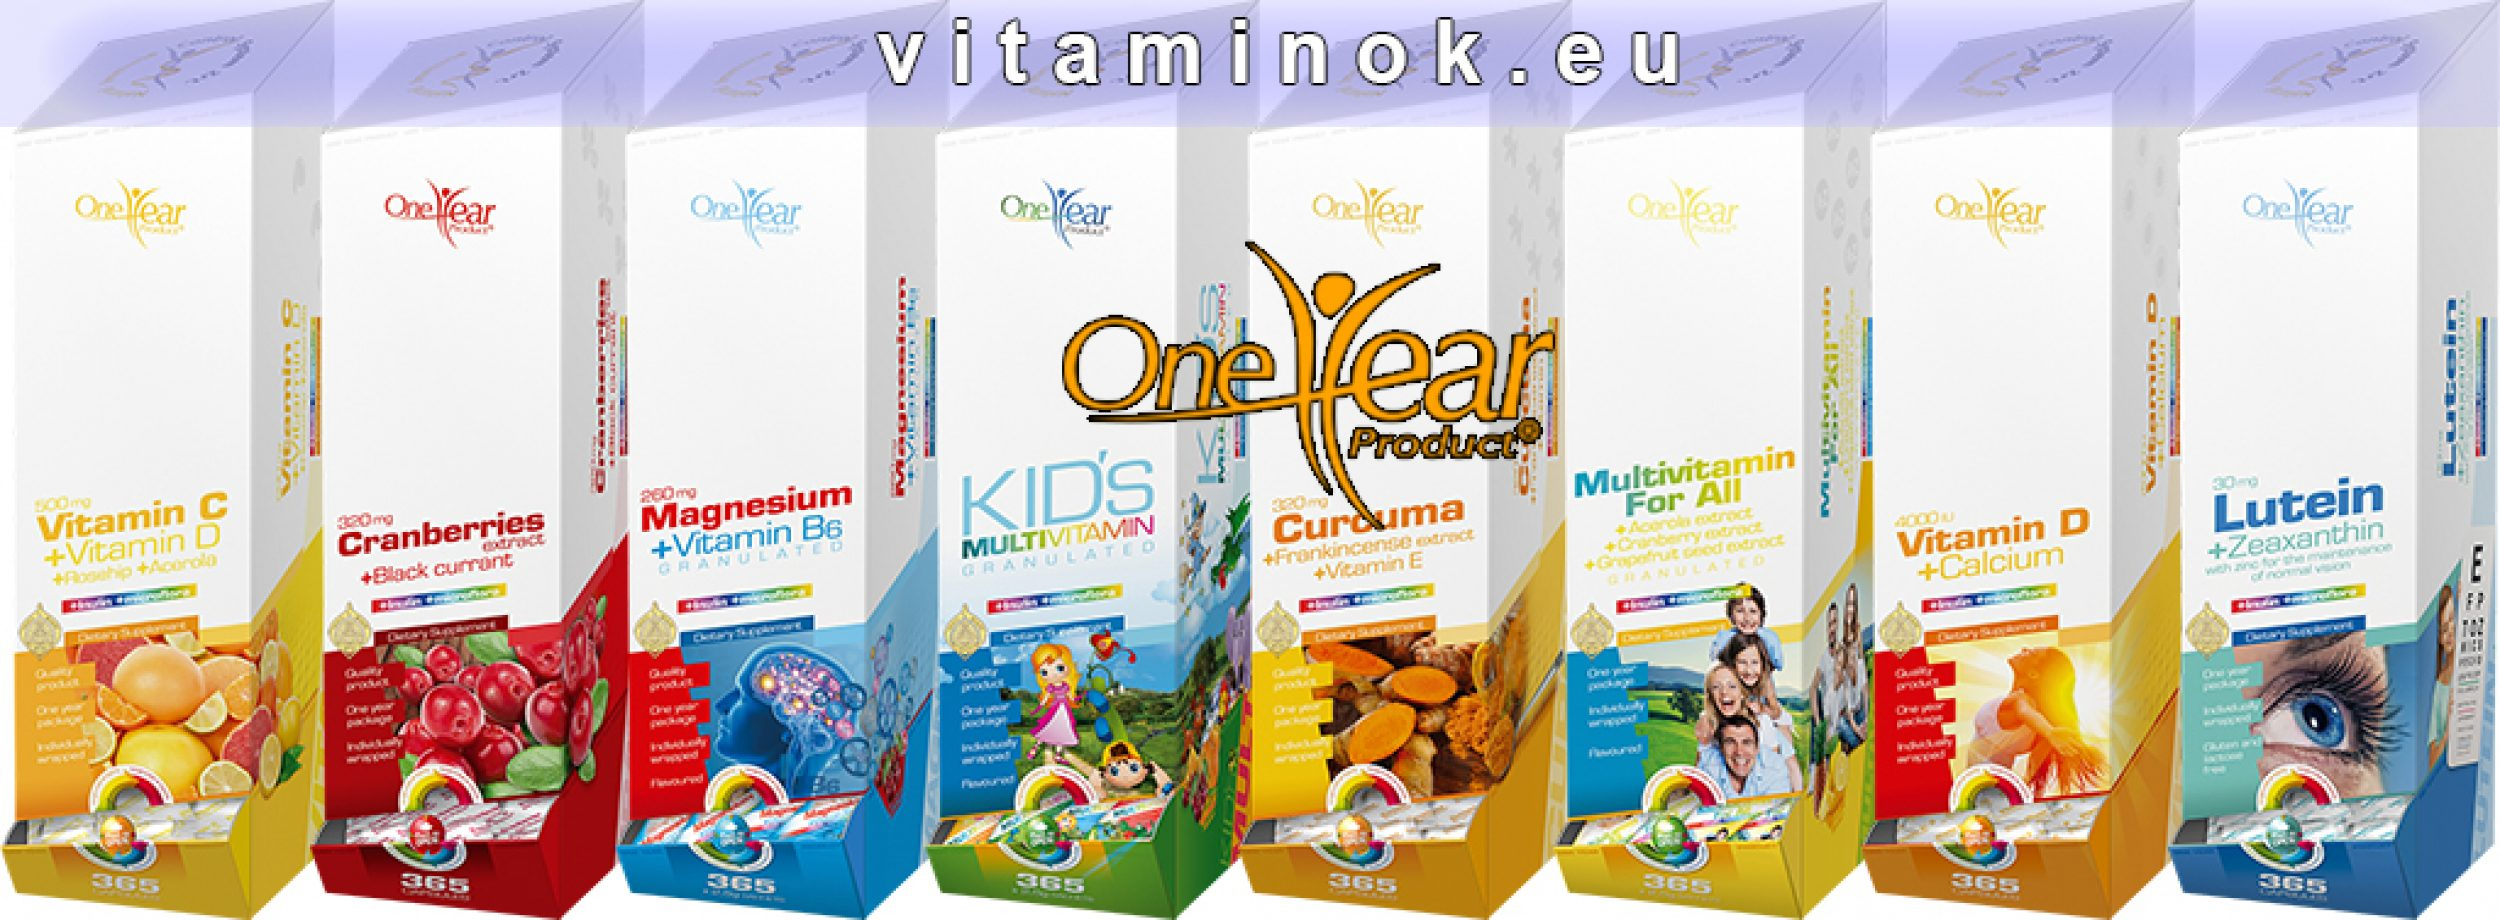 vitaminok.eu